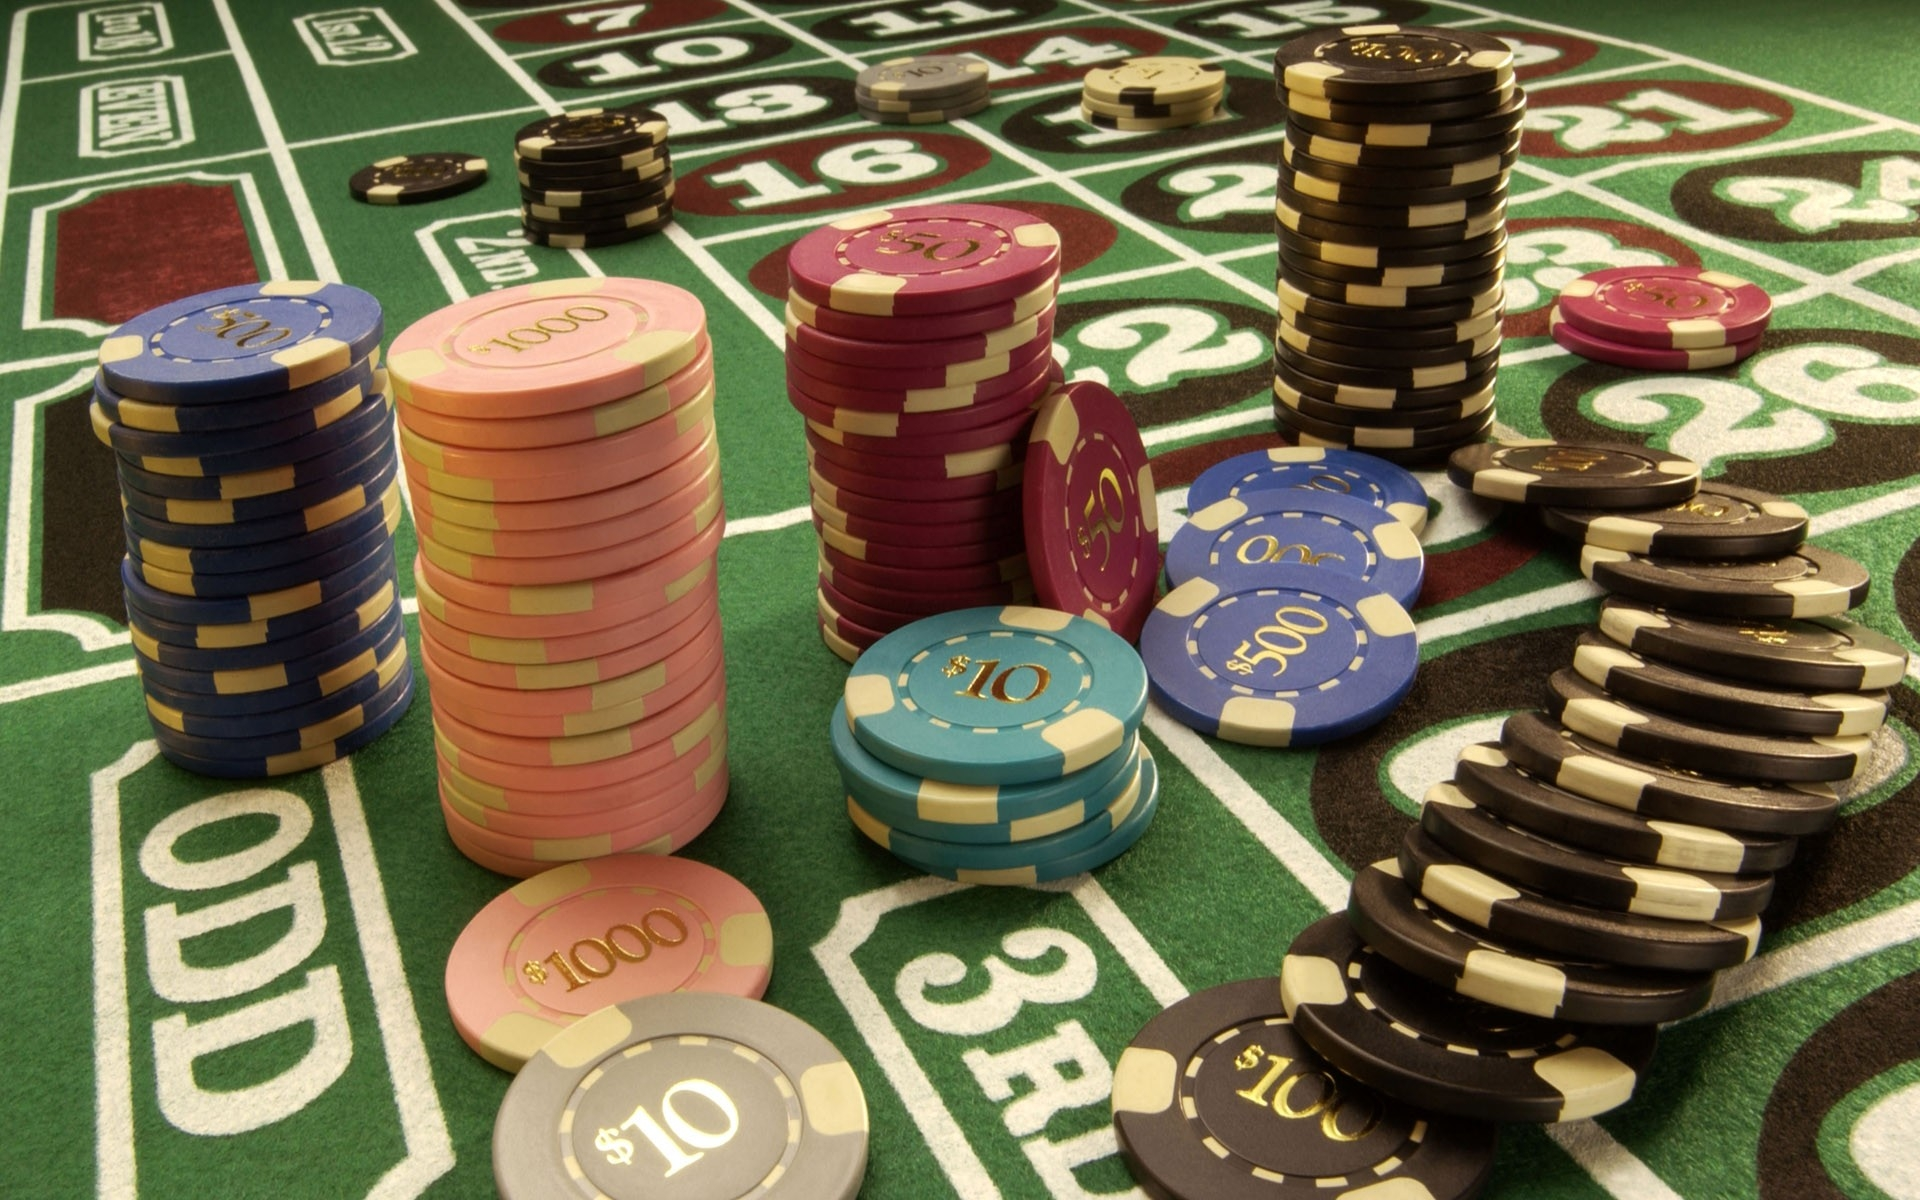 Find out how to Lose Money With Poker